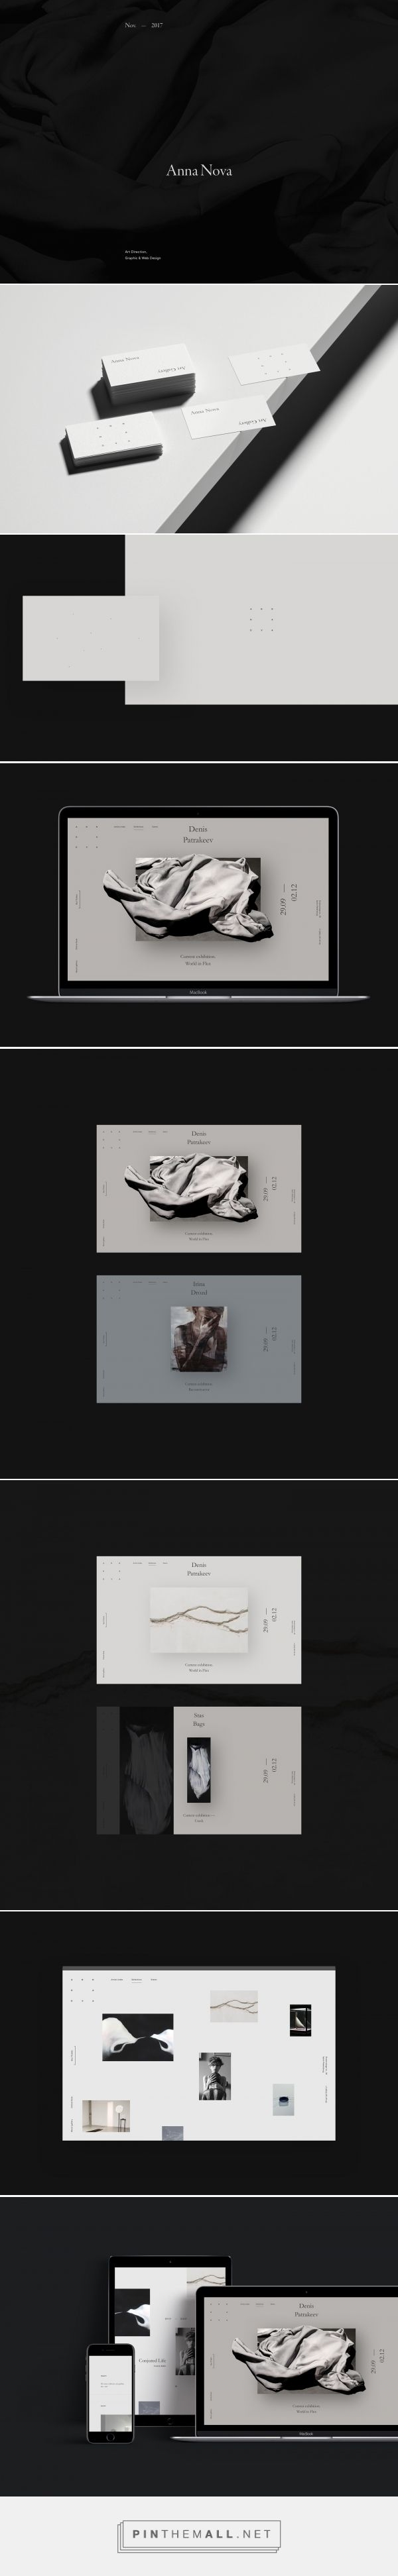 Anna Nova Art Gallery on Behance... - a grouped images picture - Pin Them All